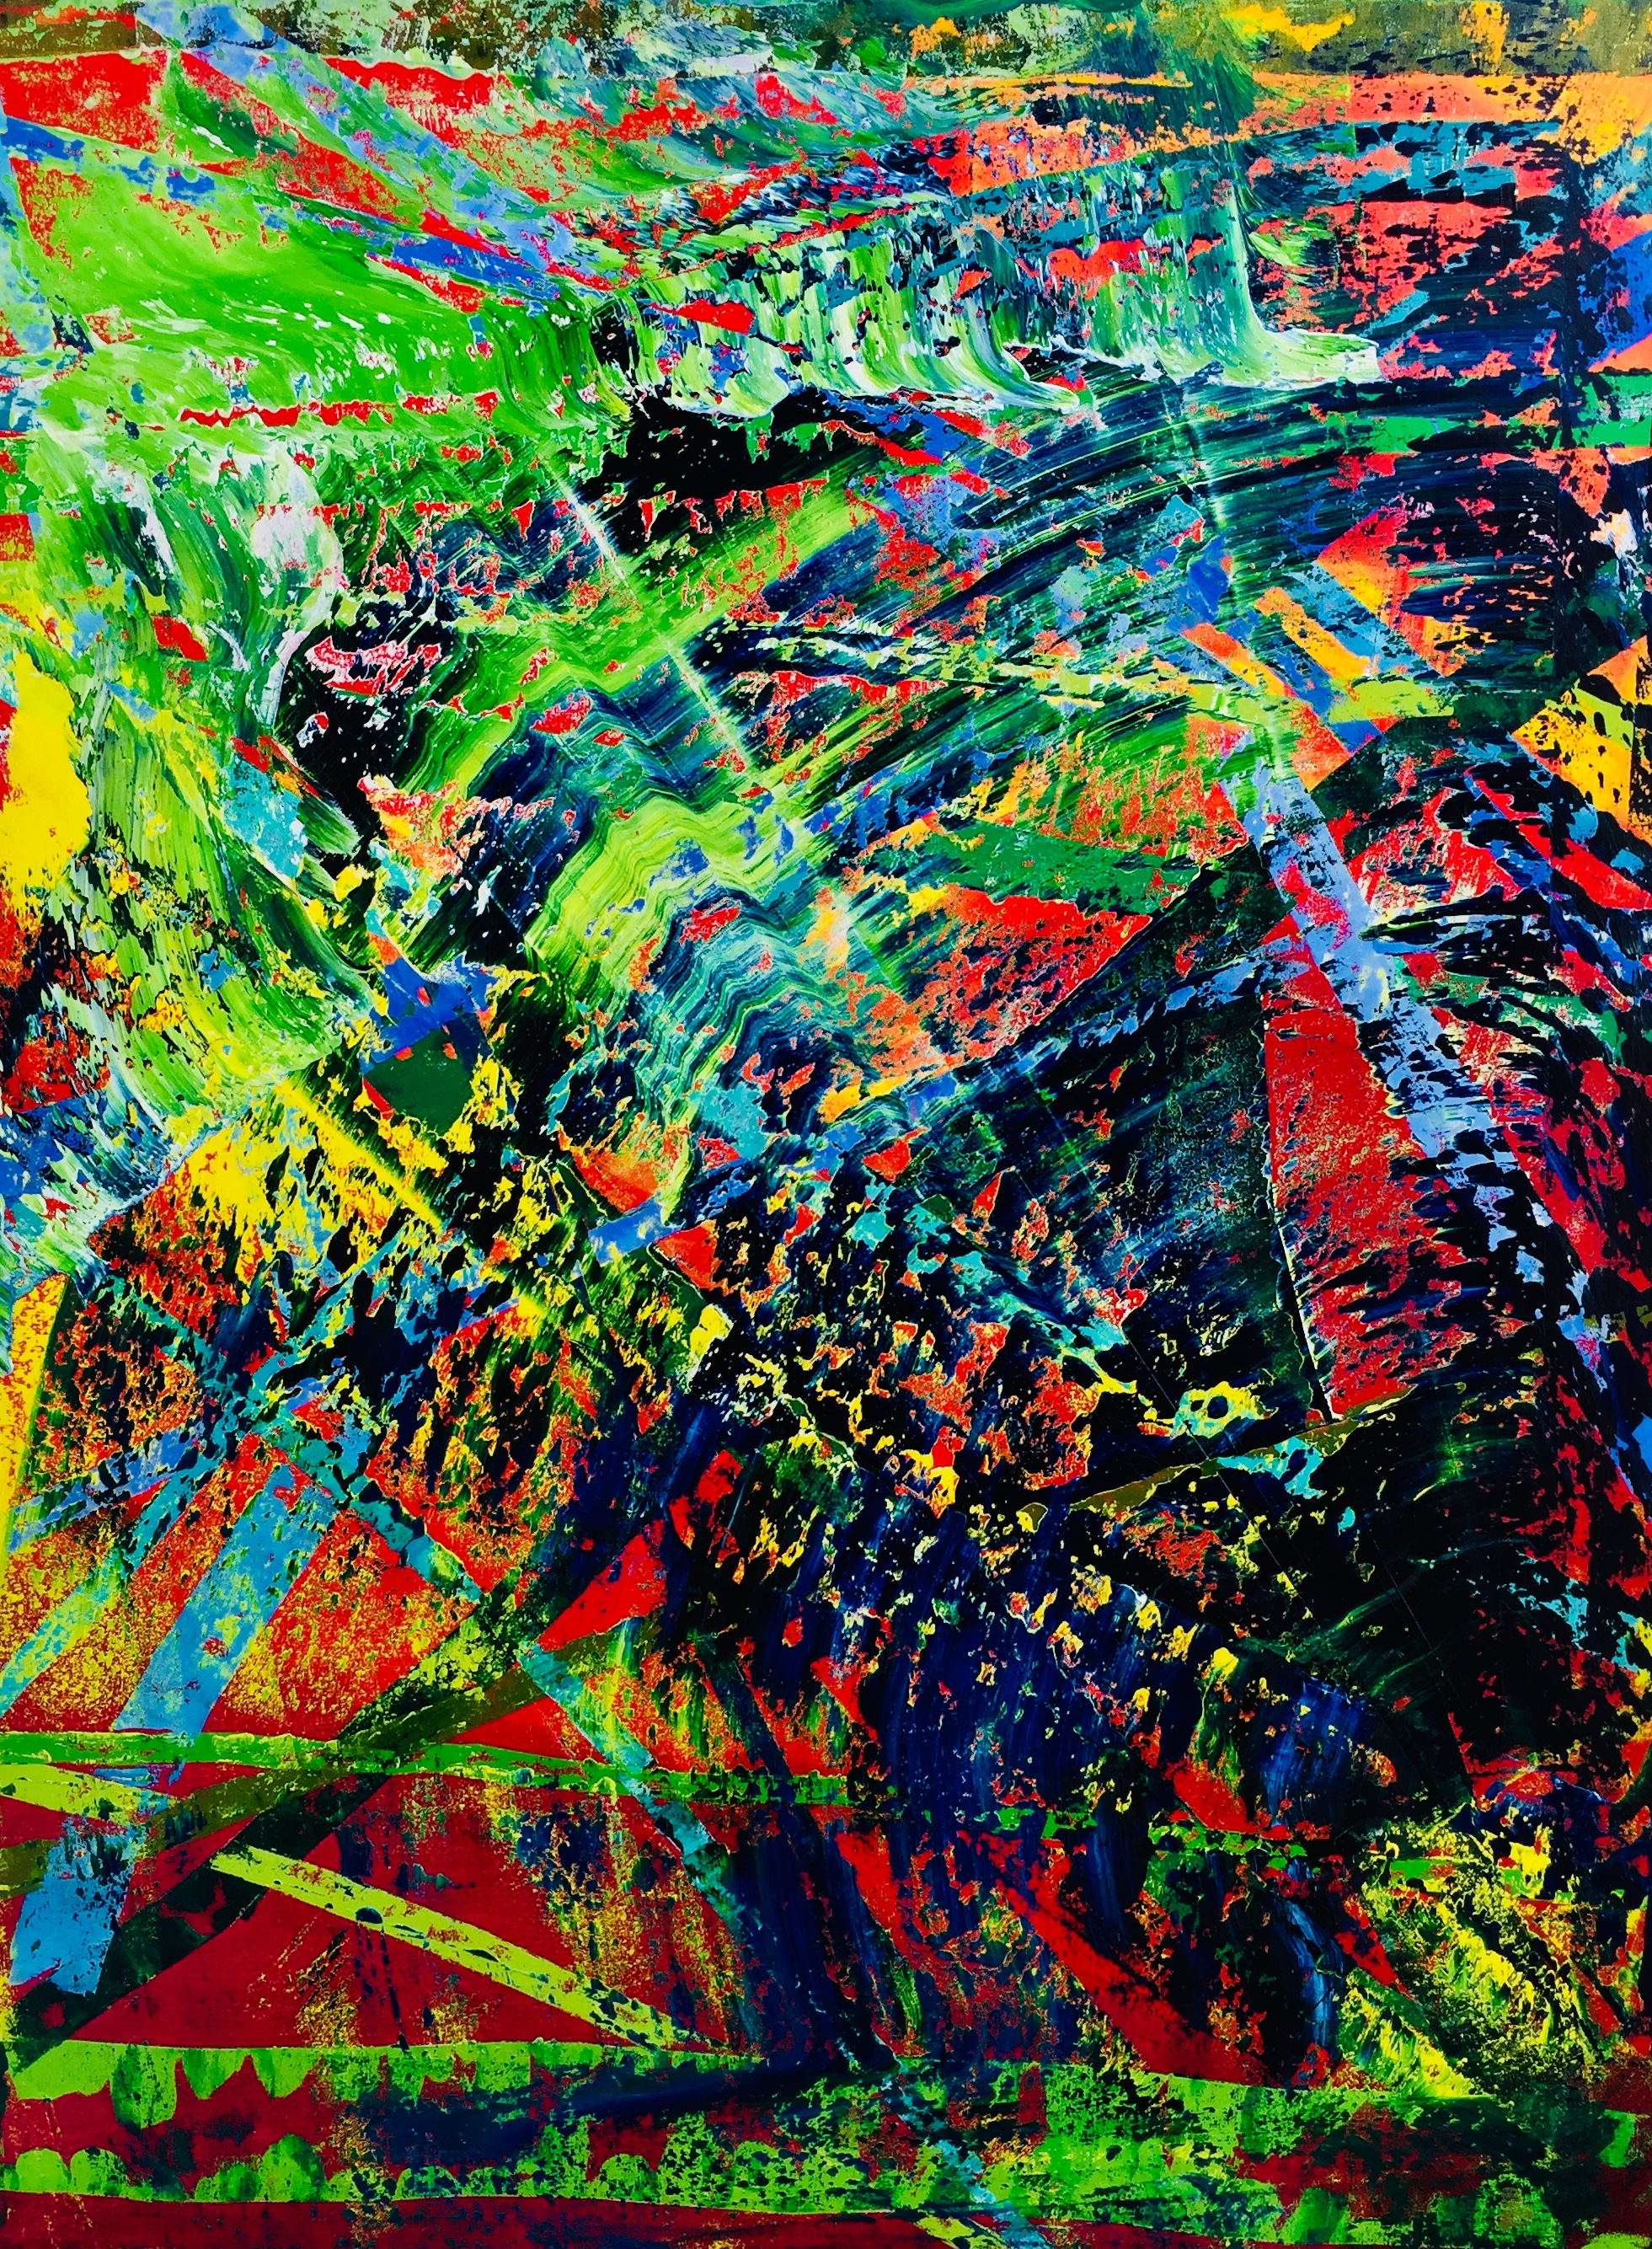 abstract painting by Maria-Victoria Checa Art Gerhard Richter style